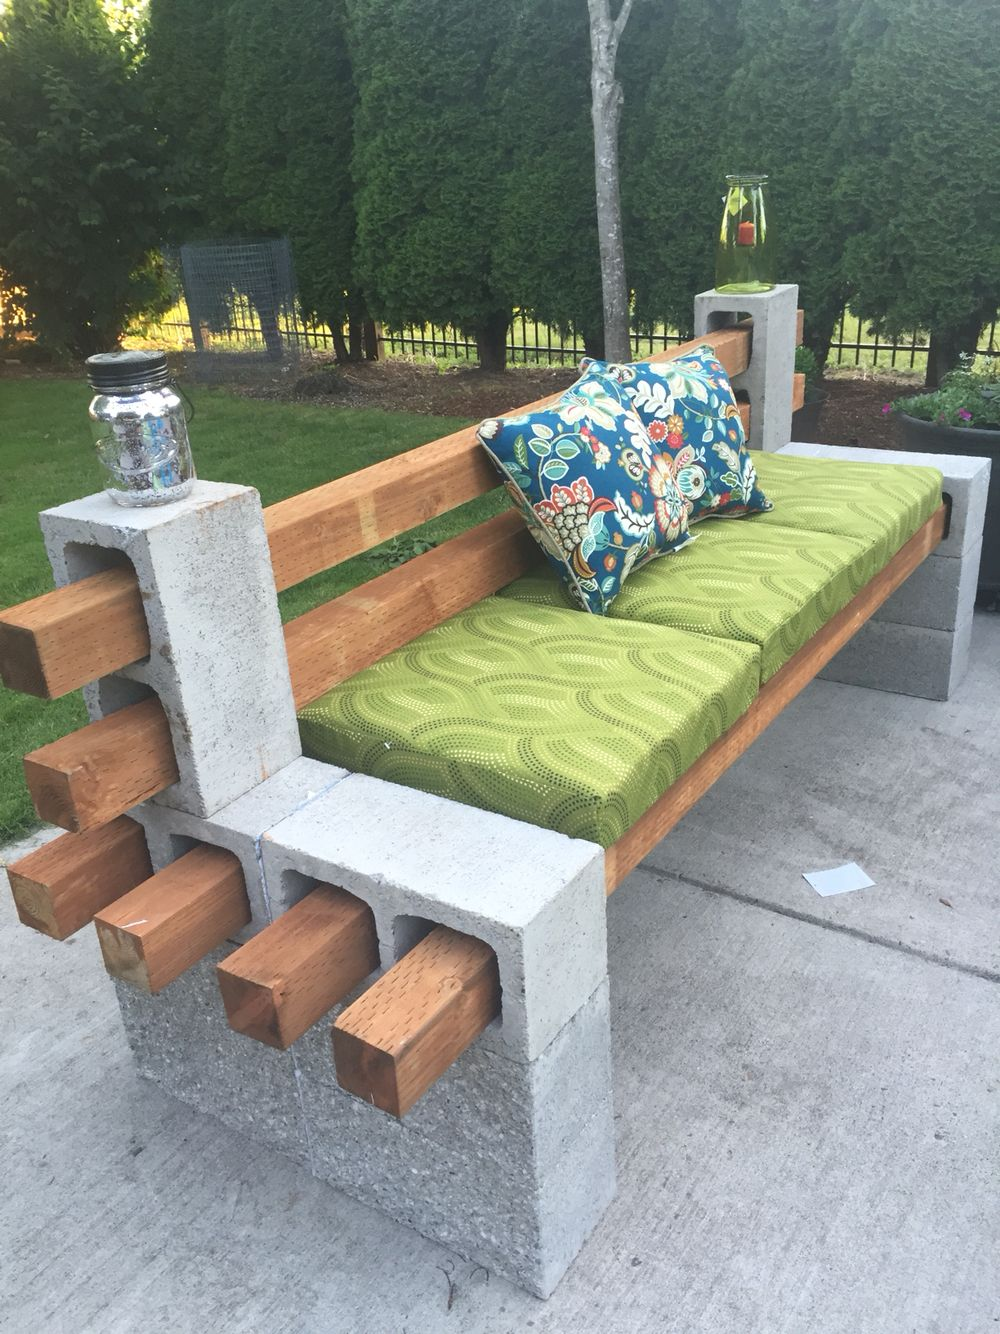 13 DIY Patio Furniture Ideas that Are